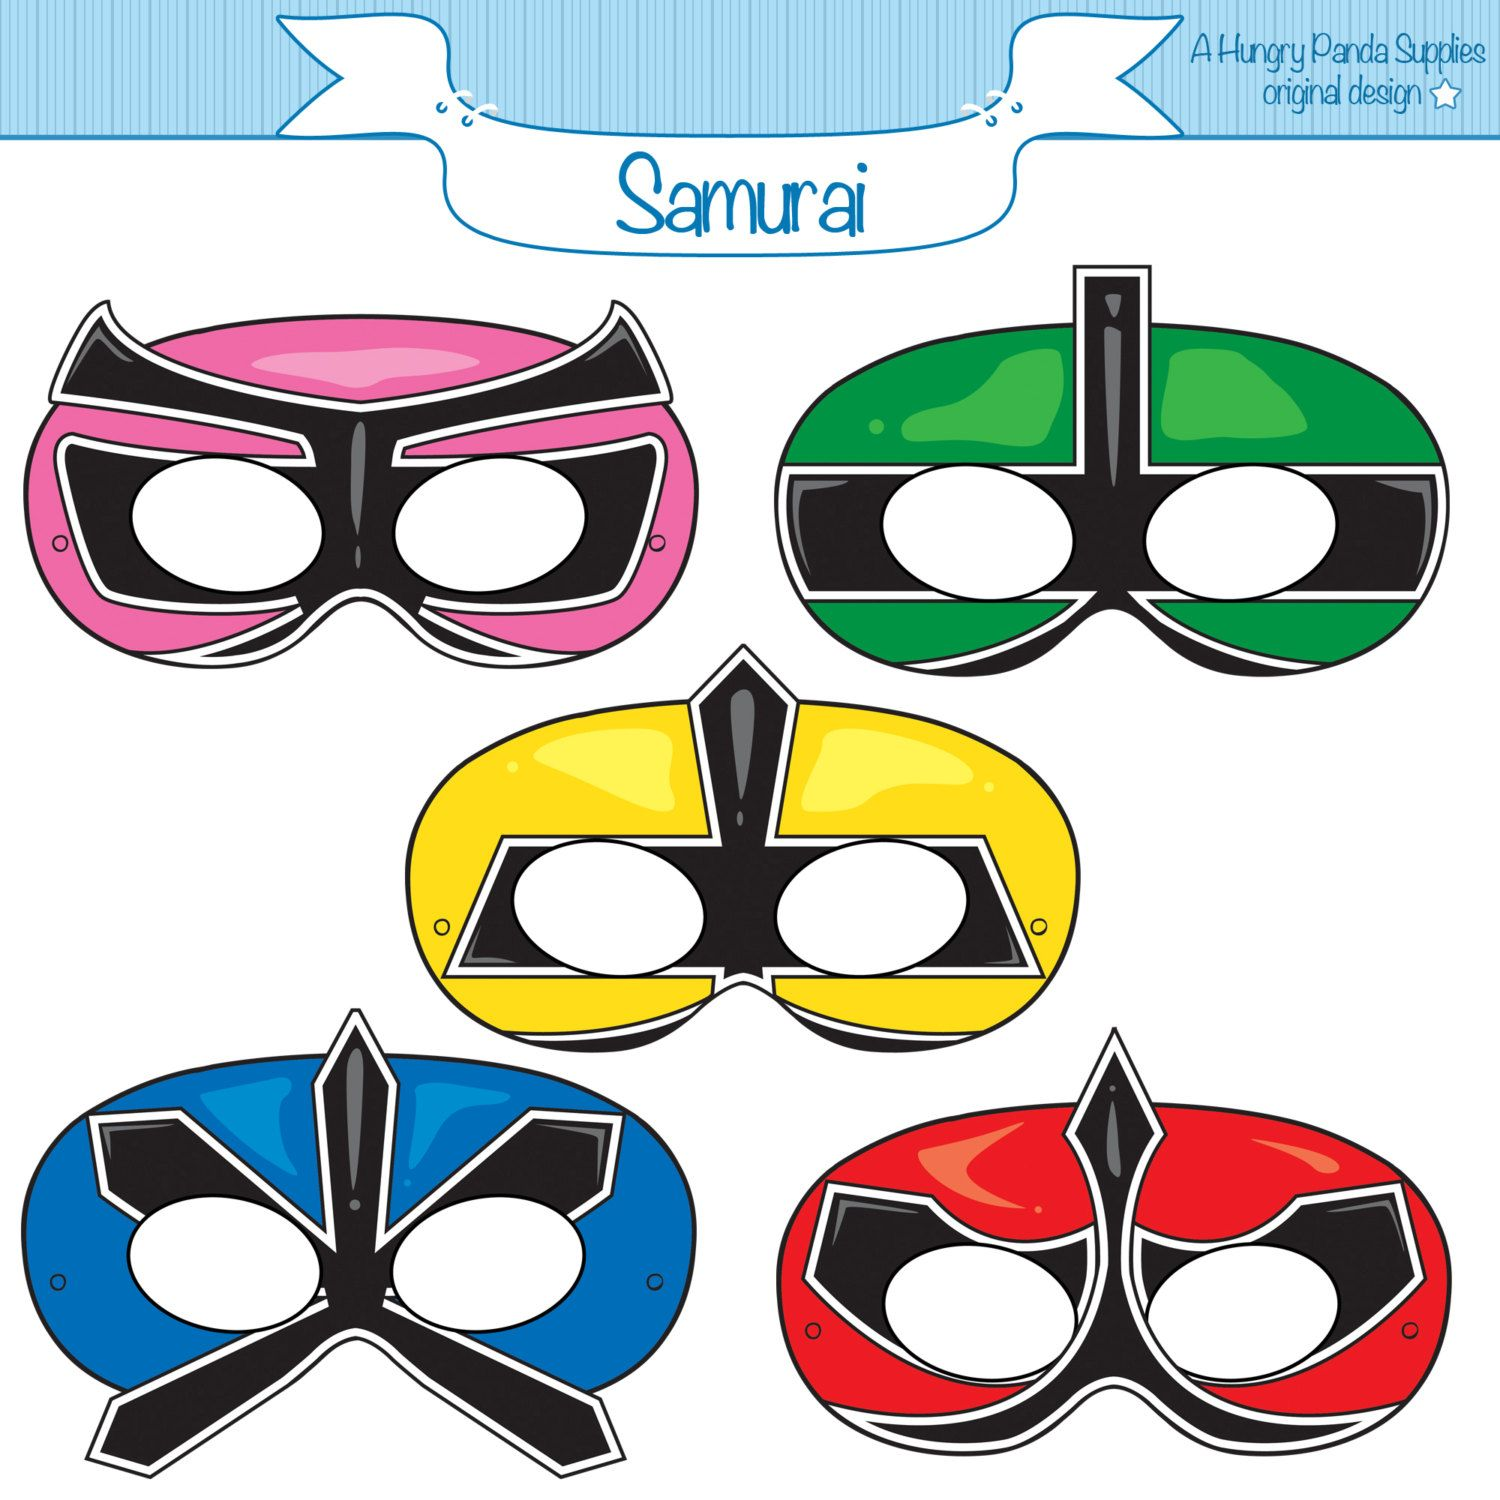 Ranger samurai printable masks samurai mask ranger party ranger samurai printable masks samurai mask ranger party superhero mask printable mask ranger mask superheroes party masks printable buycottarizona